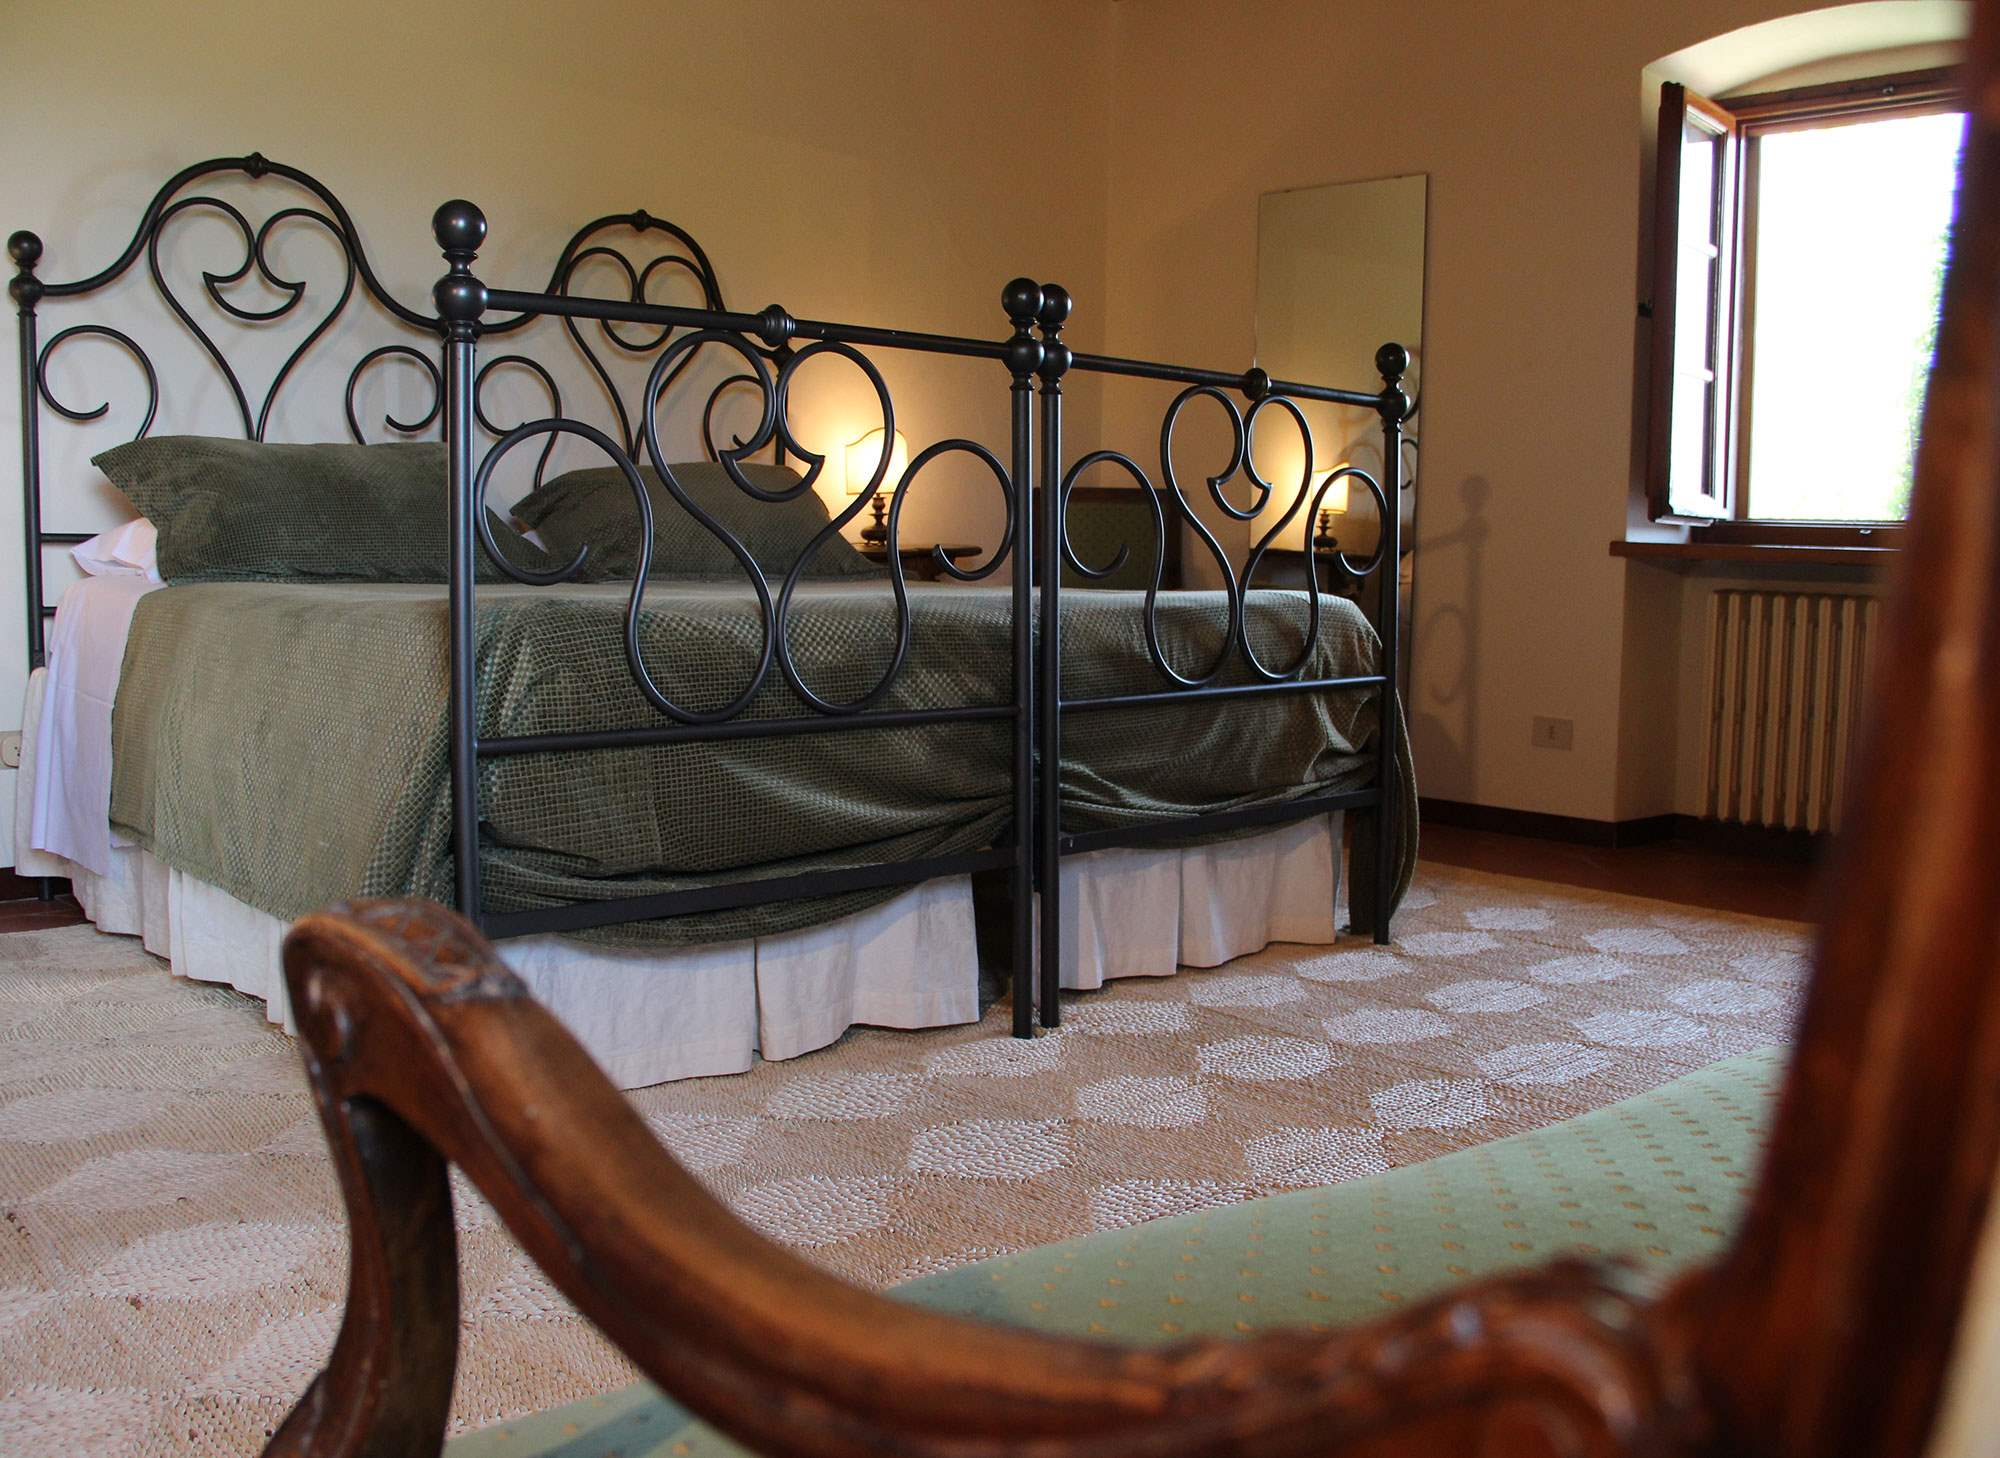 Casa Ferruzzi 2, 3 bedroom apartment in Chianti & Countryside, Tuscany Photo #16